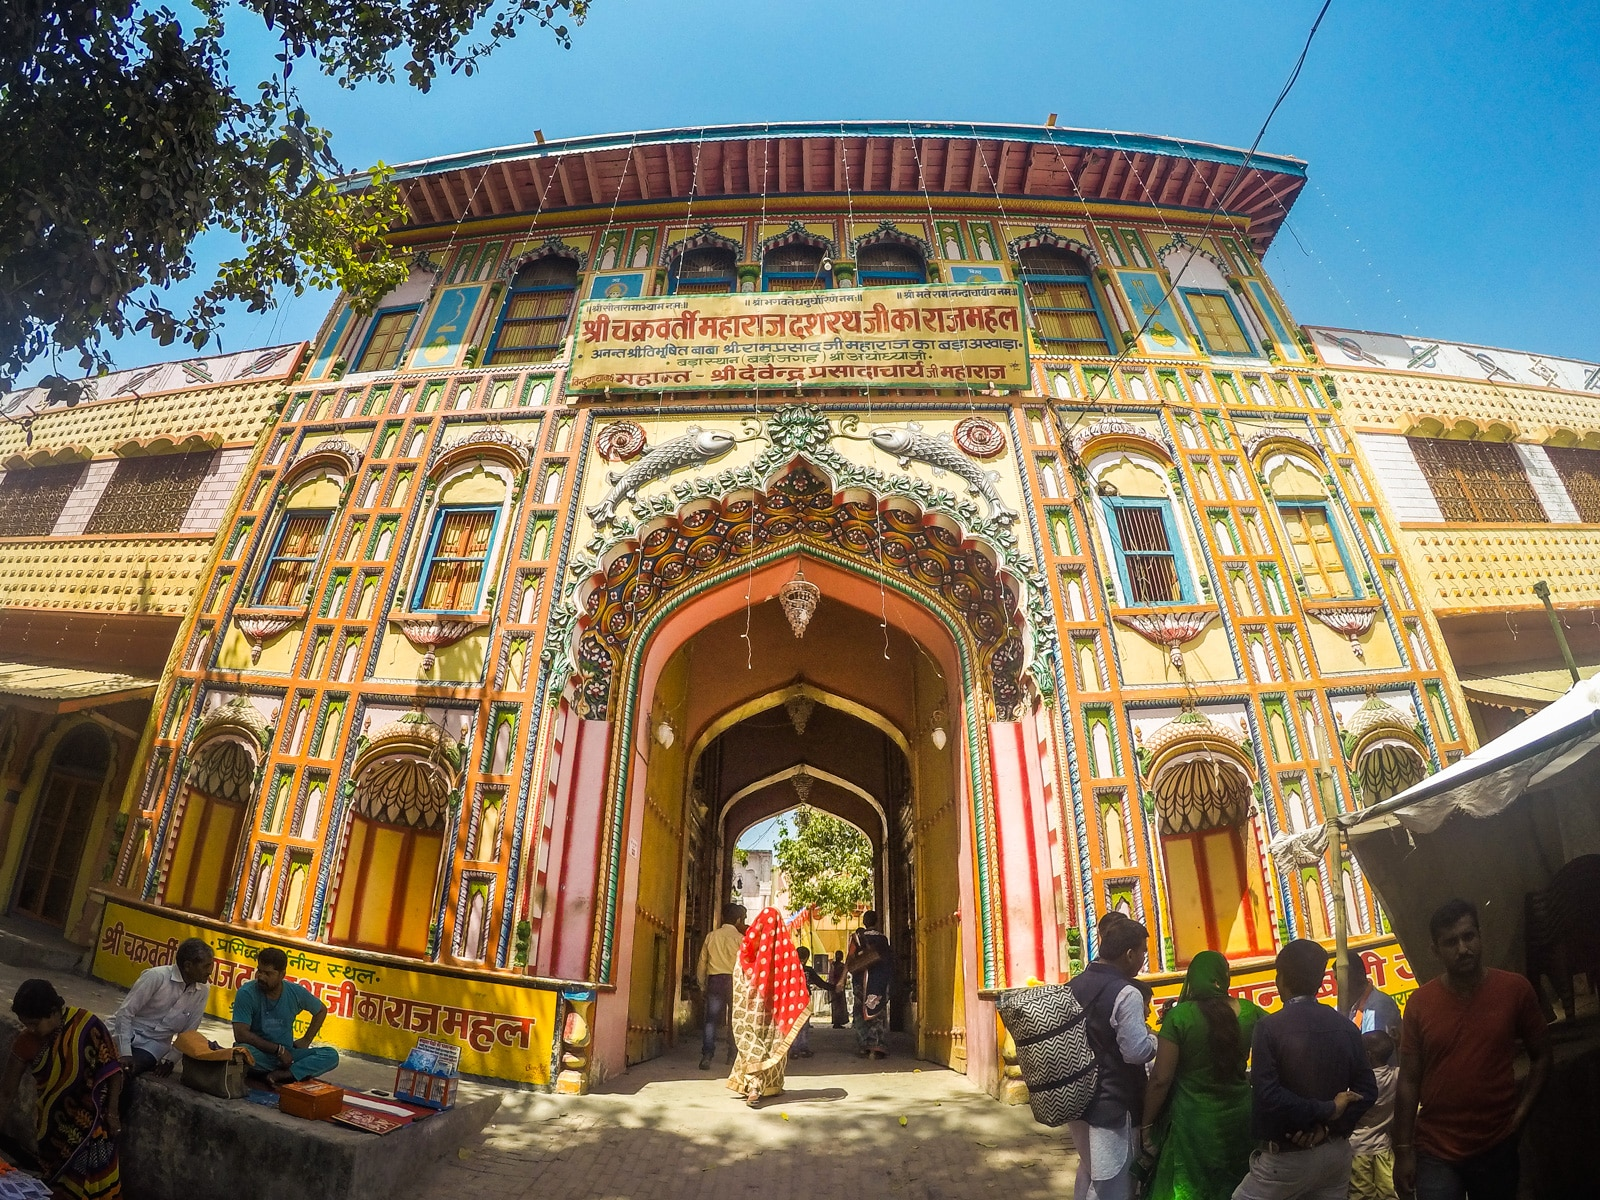 Top off the beaten track destinations in India - A colorful temple in Ayodhya, Uttar Pradesh - Lost With Purpose travel blog